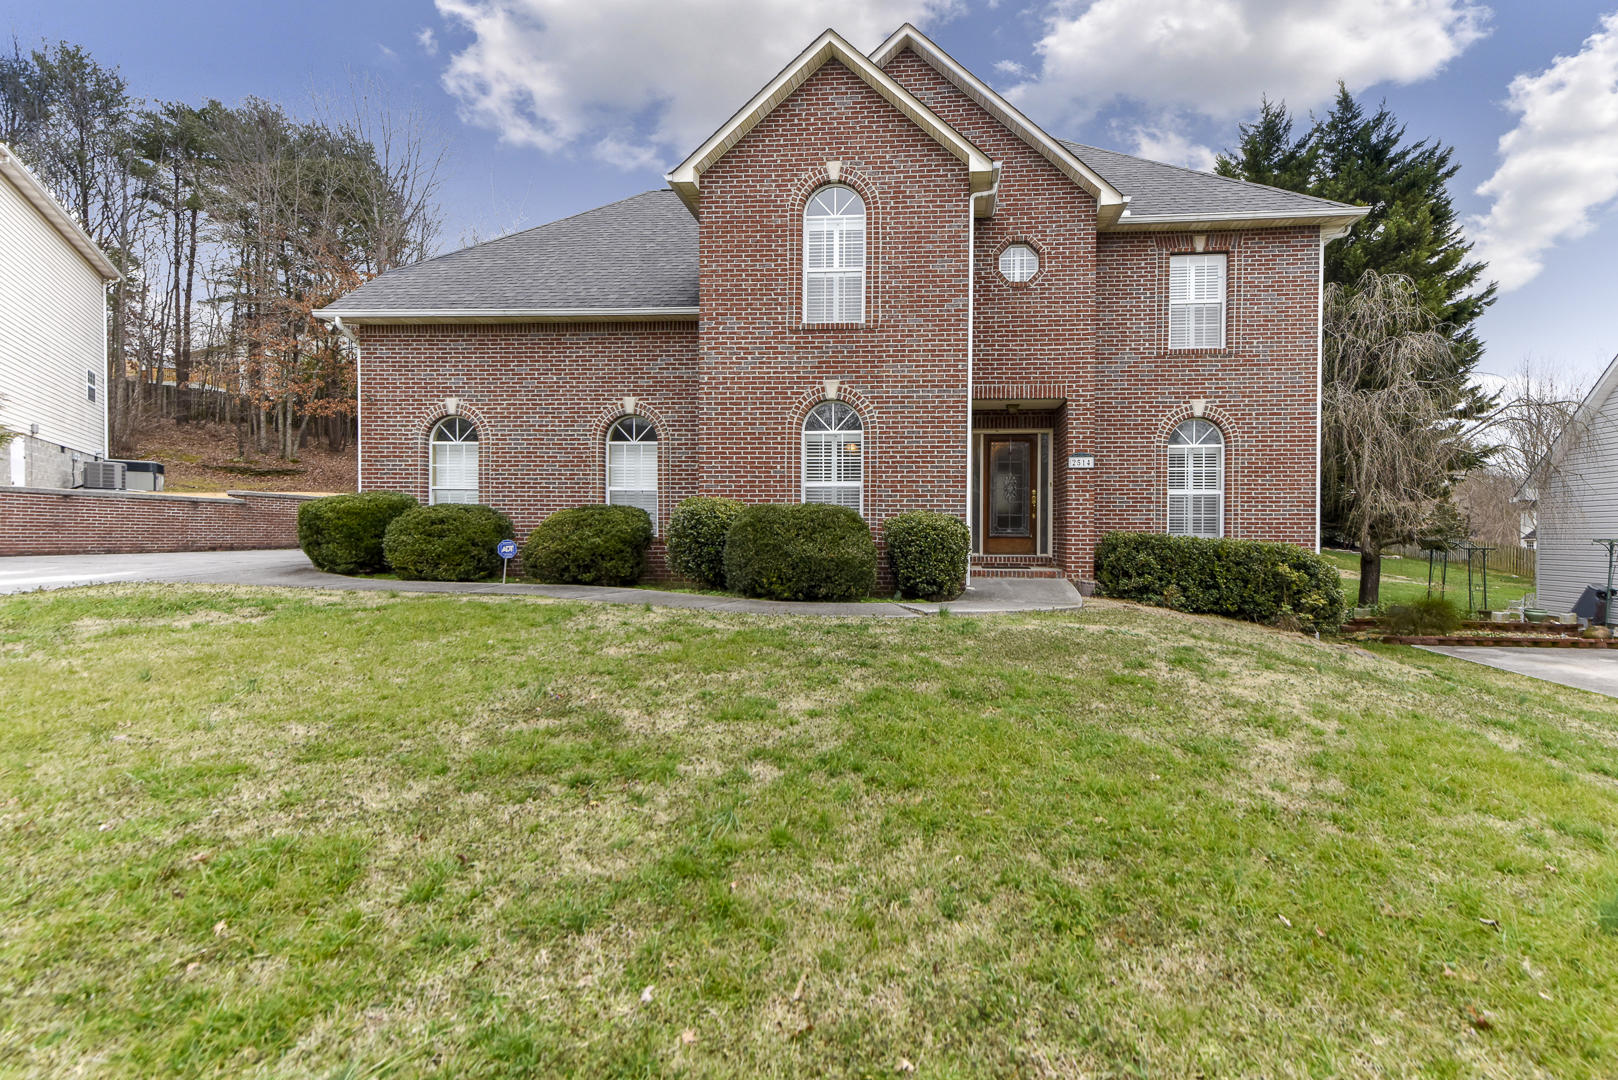 2514 Piney Grove Church Rd, Knoxville, TN 37921